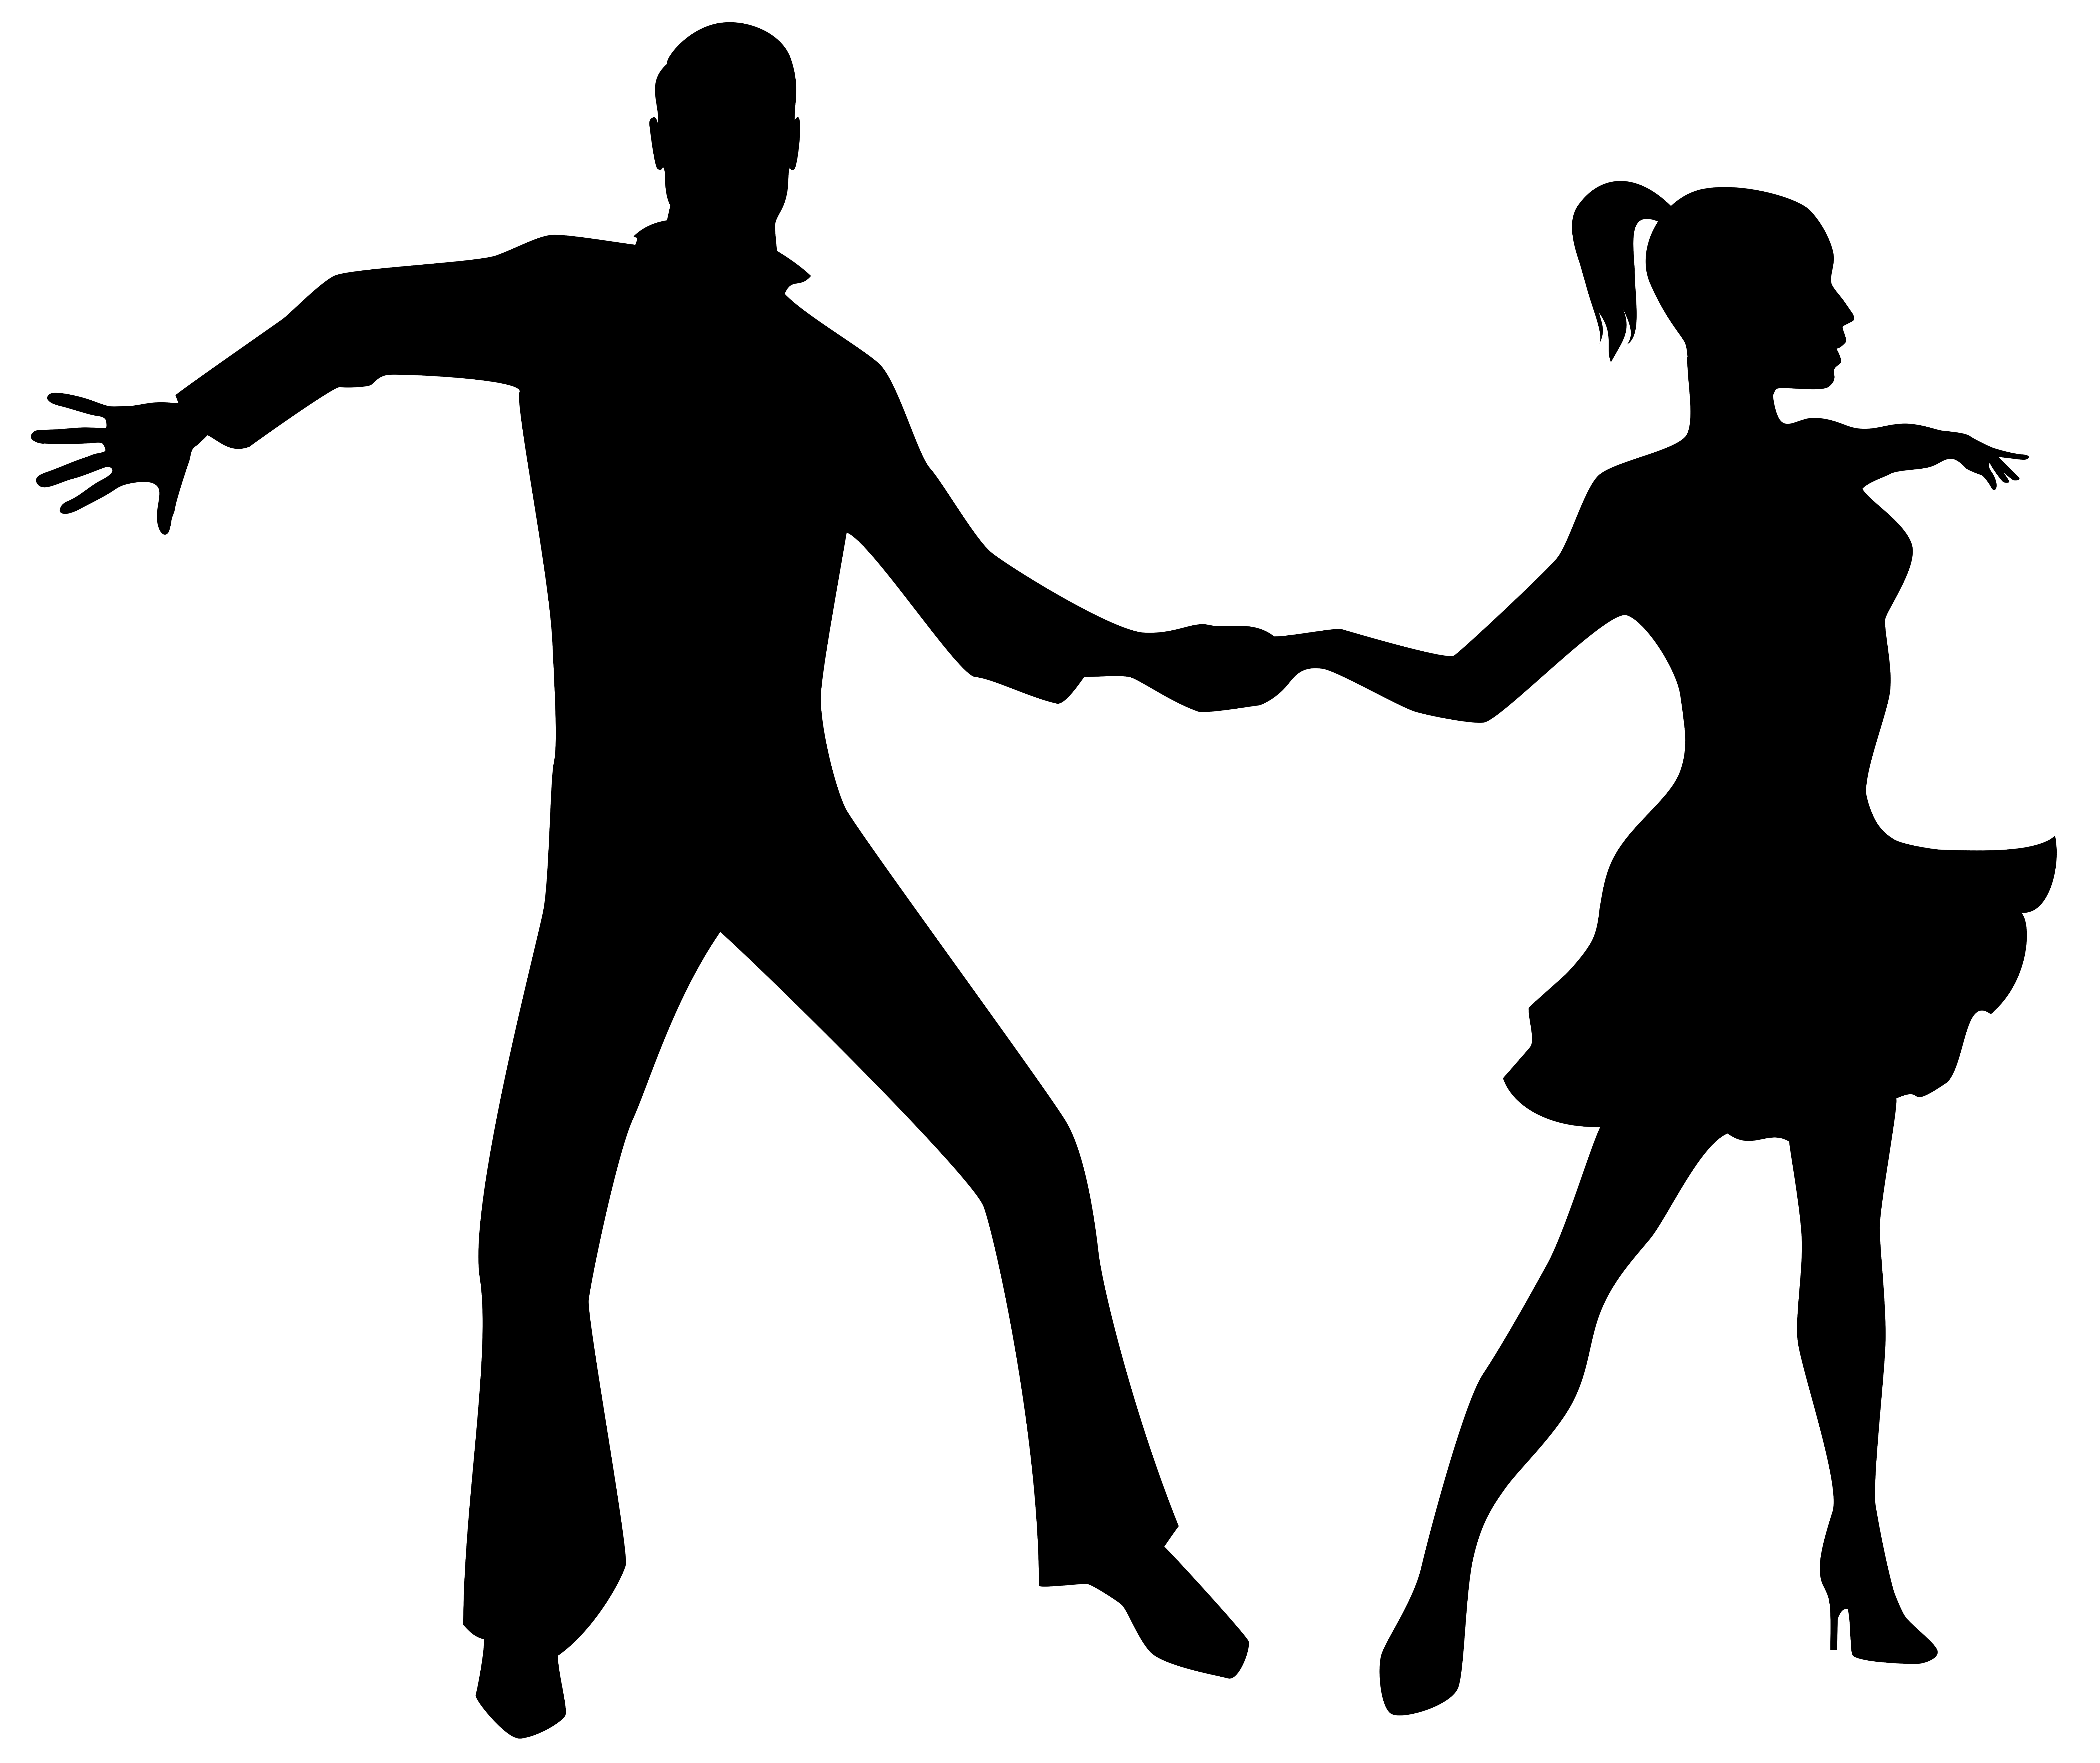 Loving Boy And Girl Hd Wallpapers Dancing Couple Silhouette Png Transparent Clip Art Image